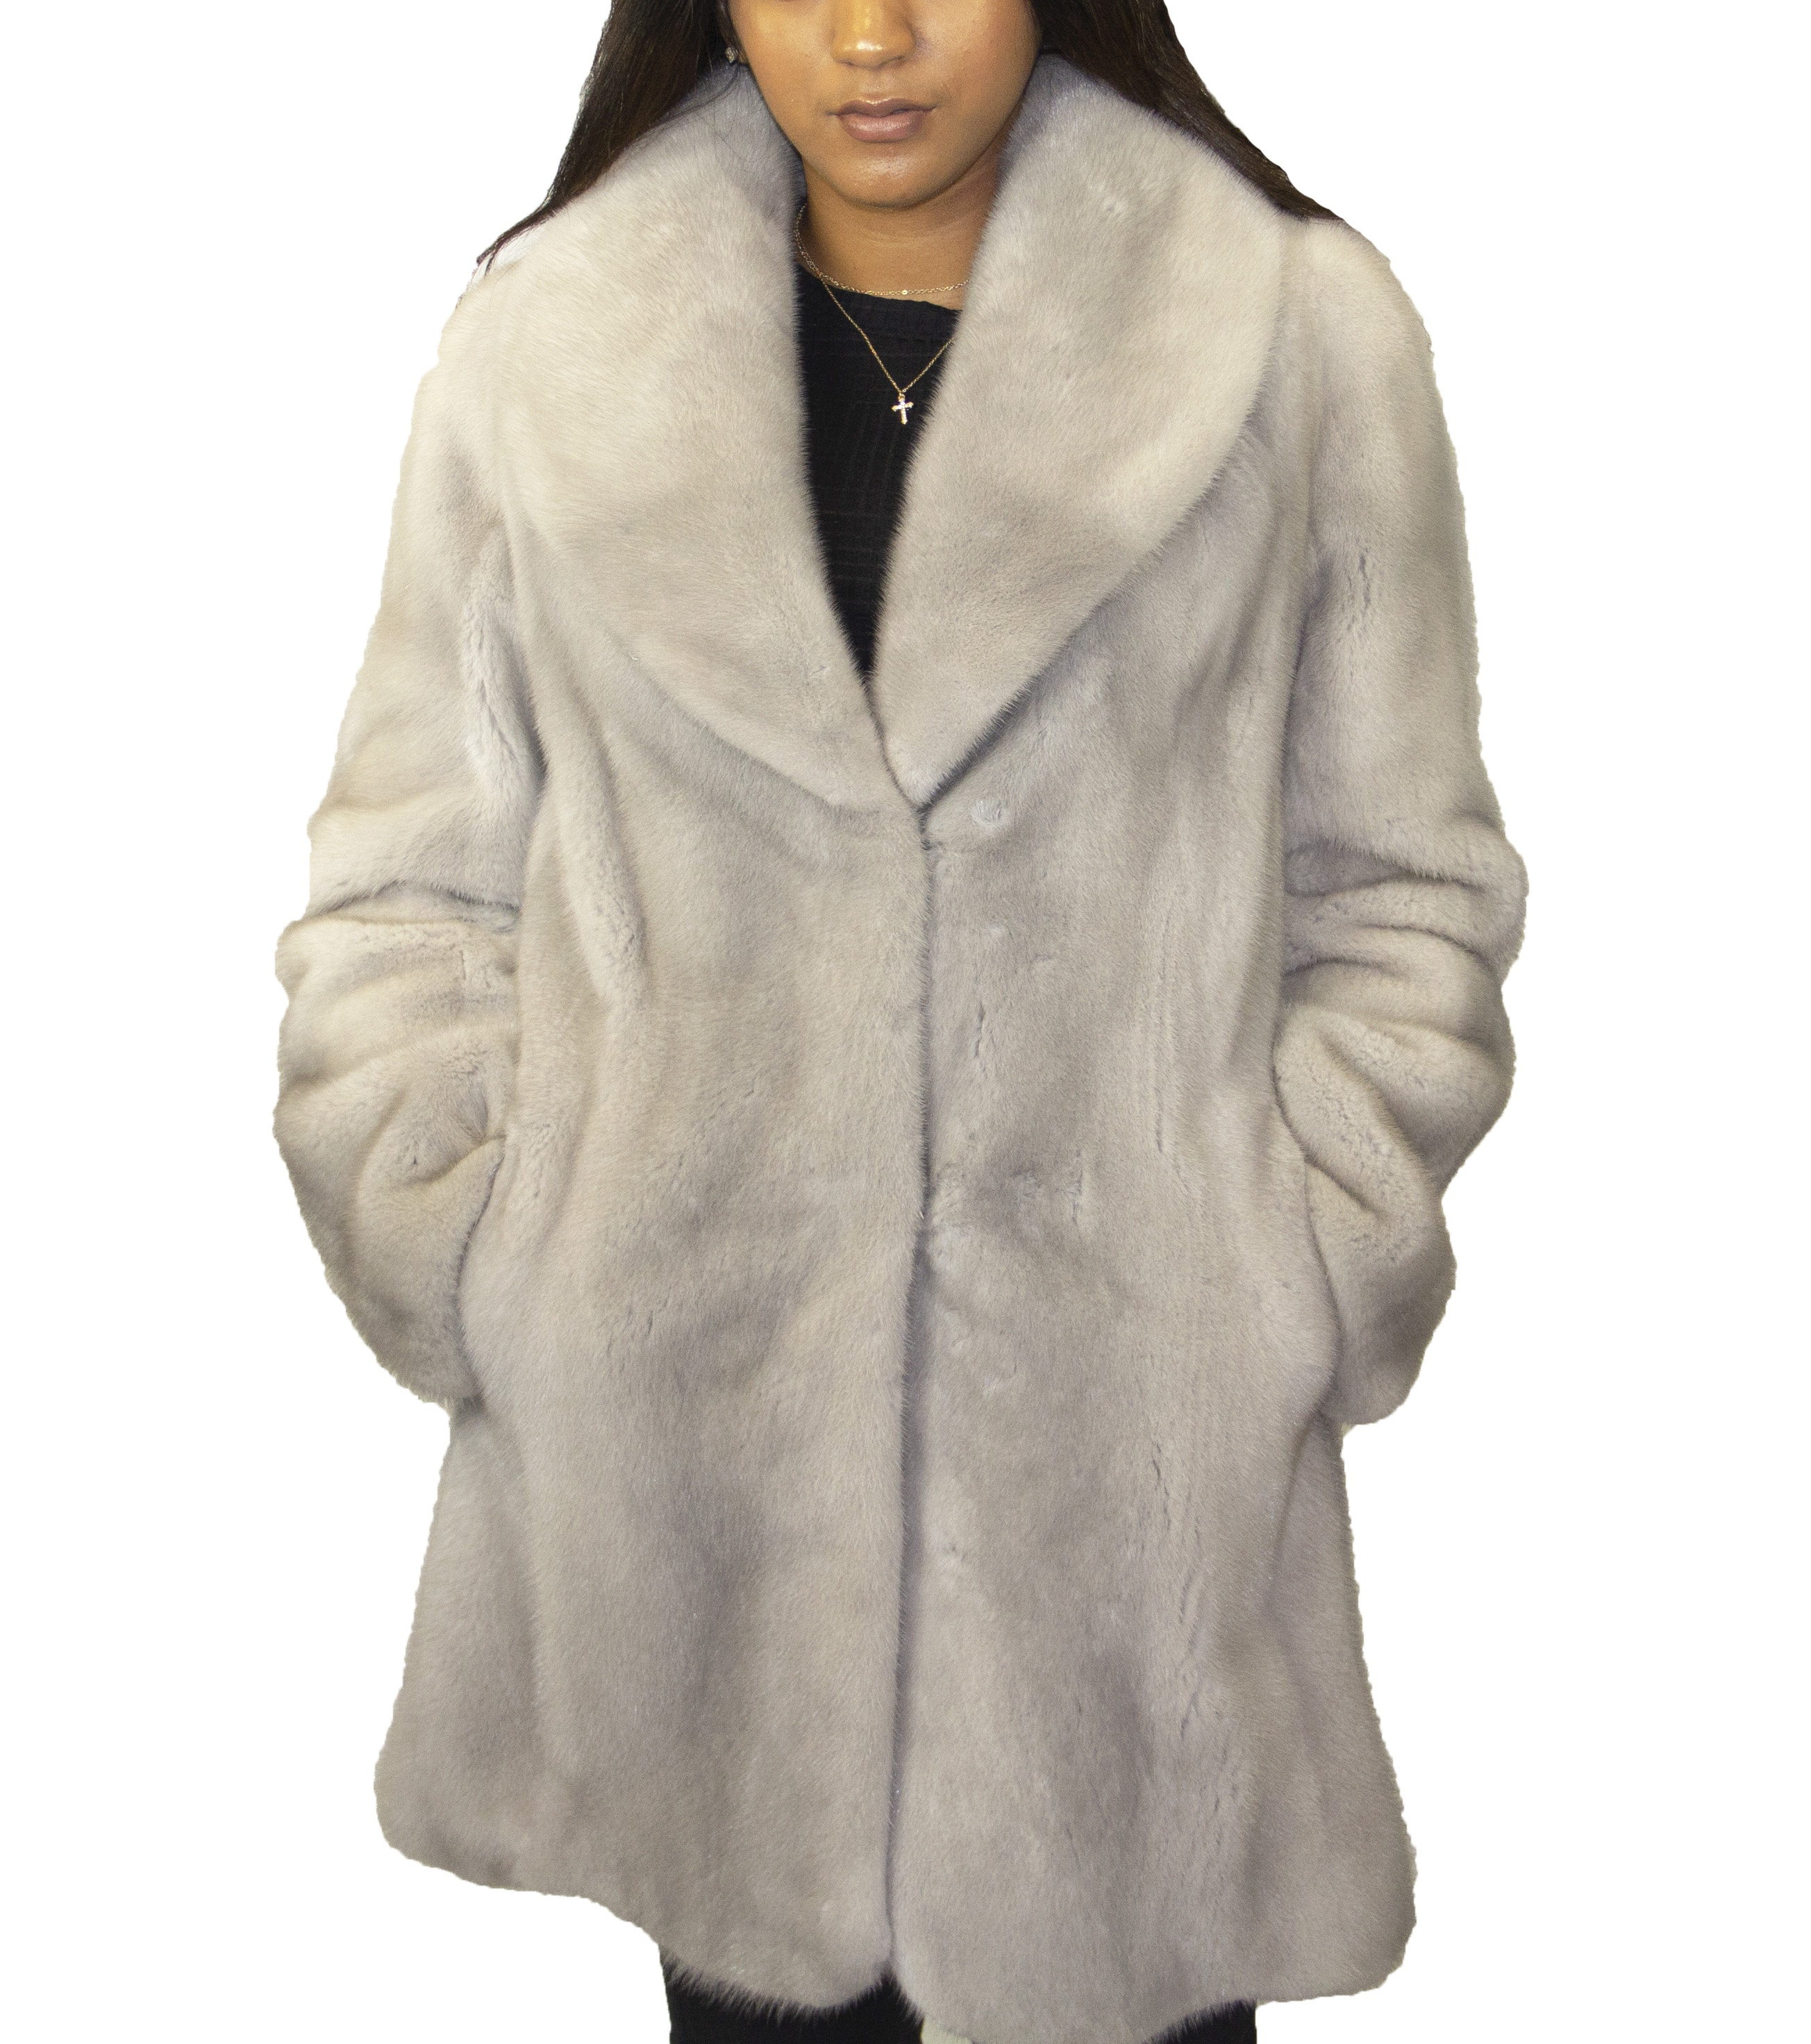 Sapphire Mink Jacket with Blouson Sleeves and Shawl Collar